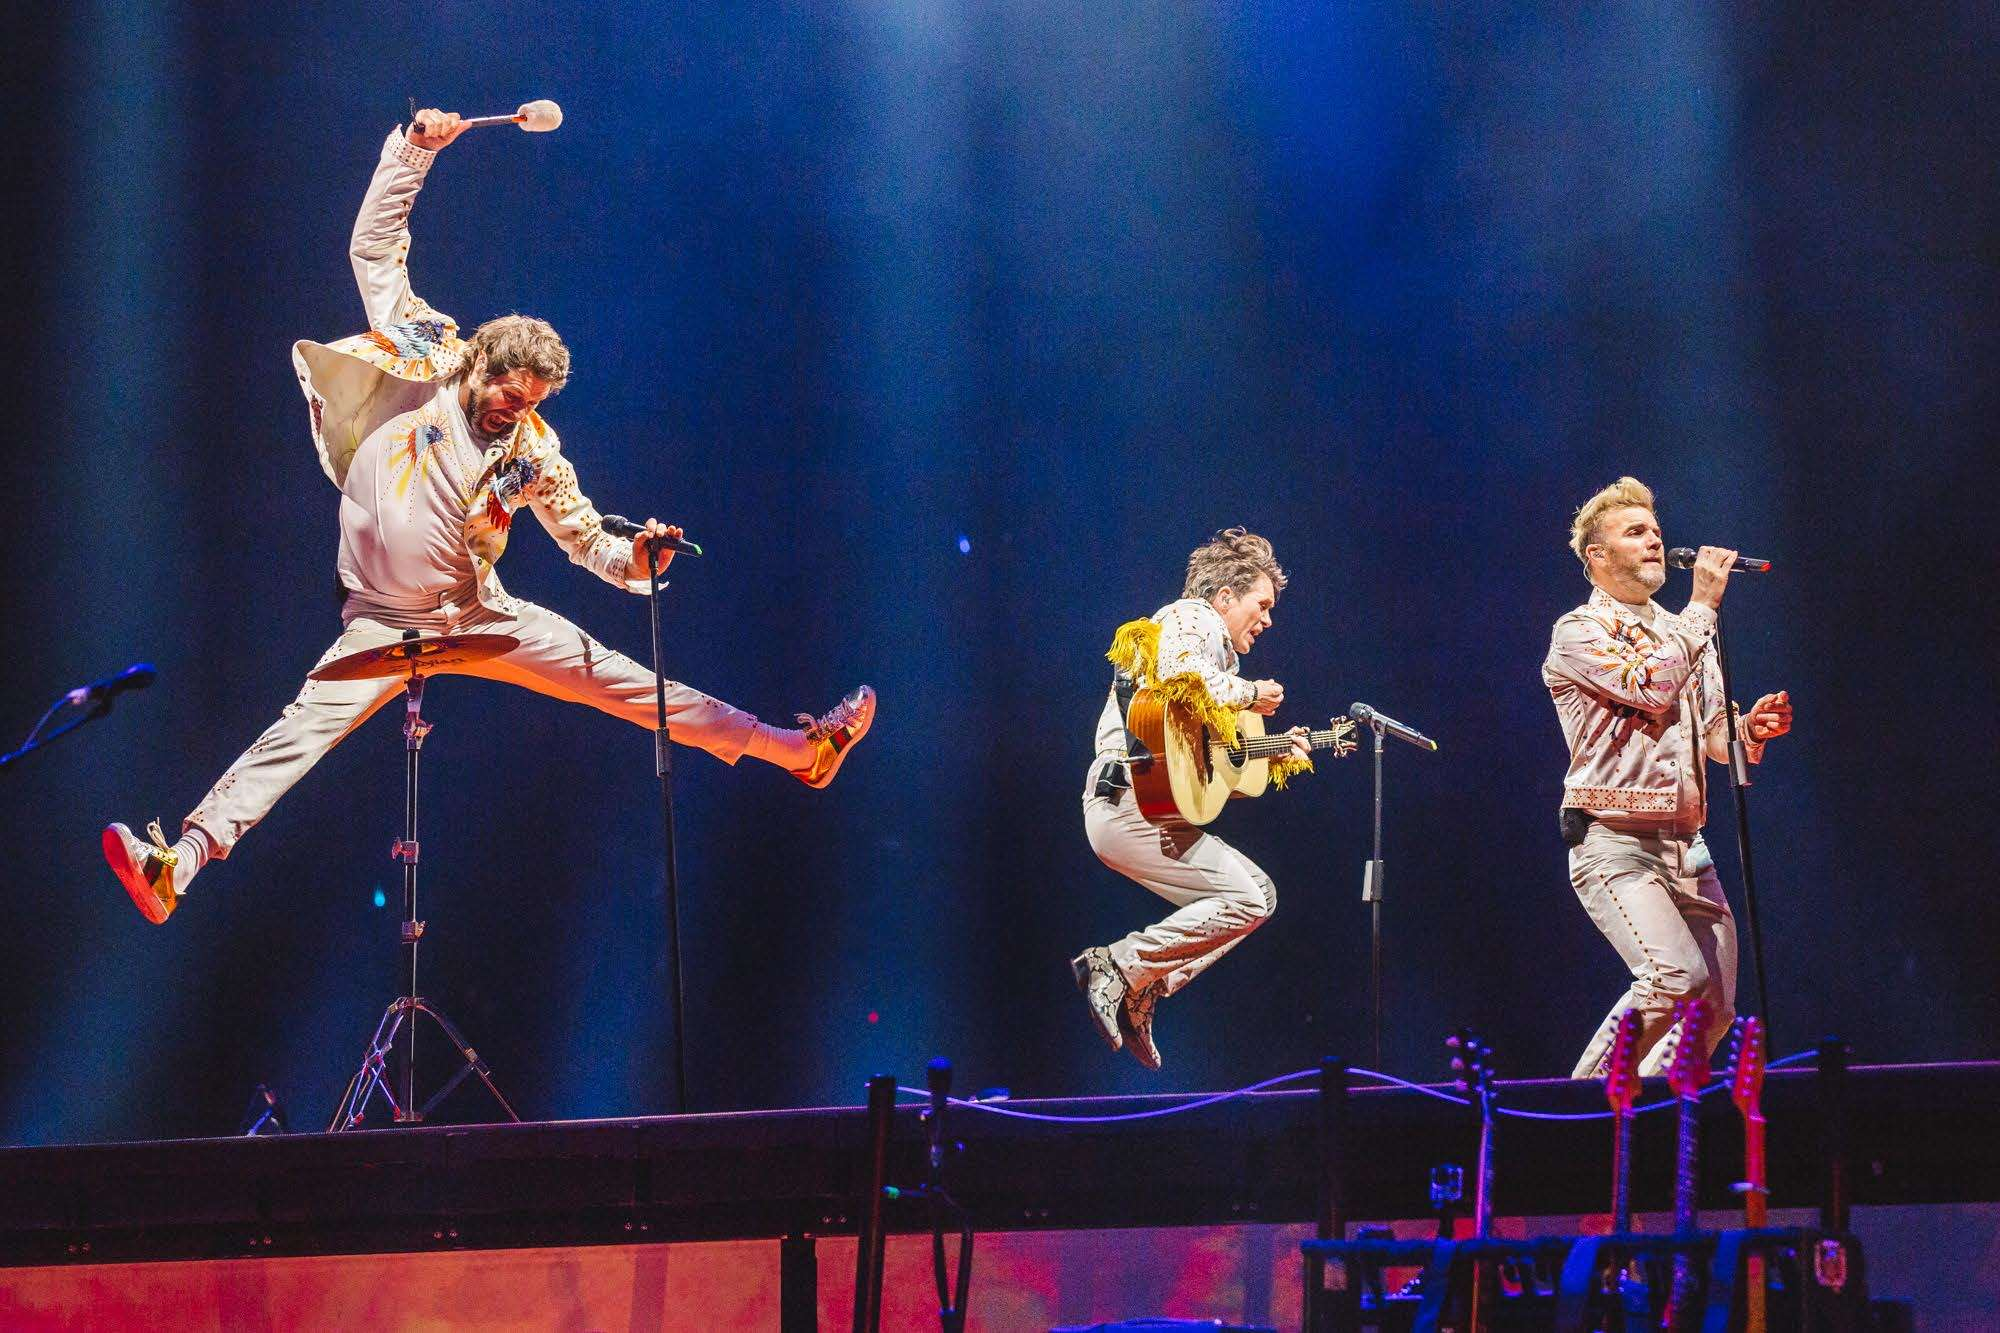 See Take That on the big screen at Vue Cheshire Oaks